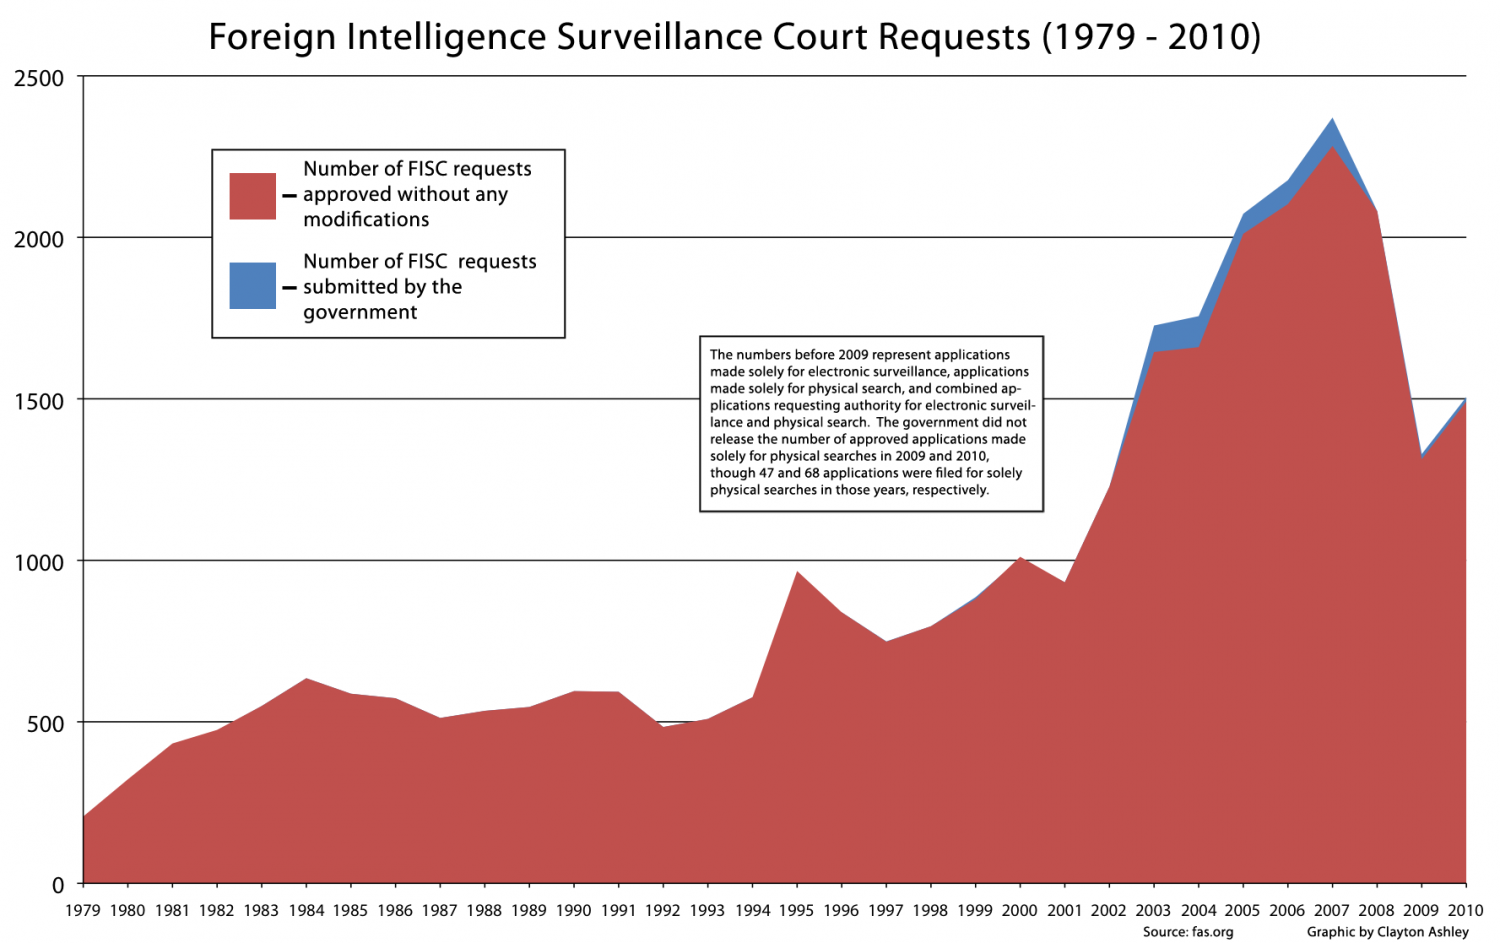 Foreign Intelligence Surveillance Court Requests  Infographic